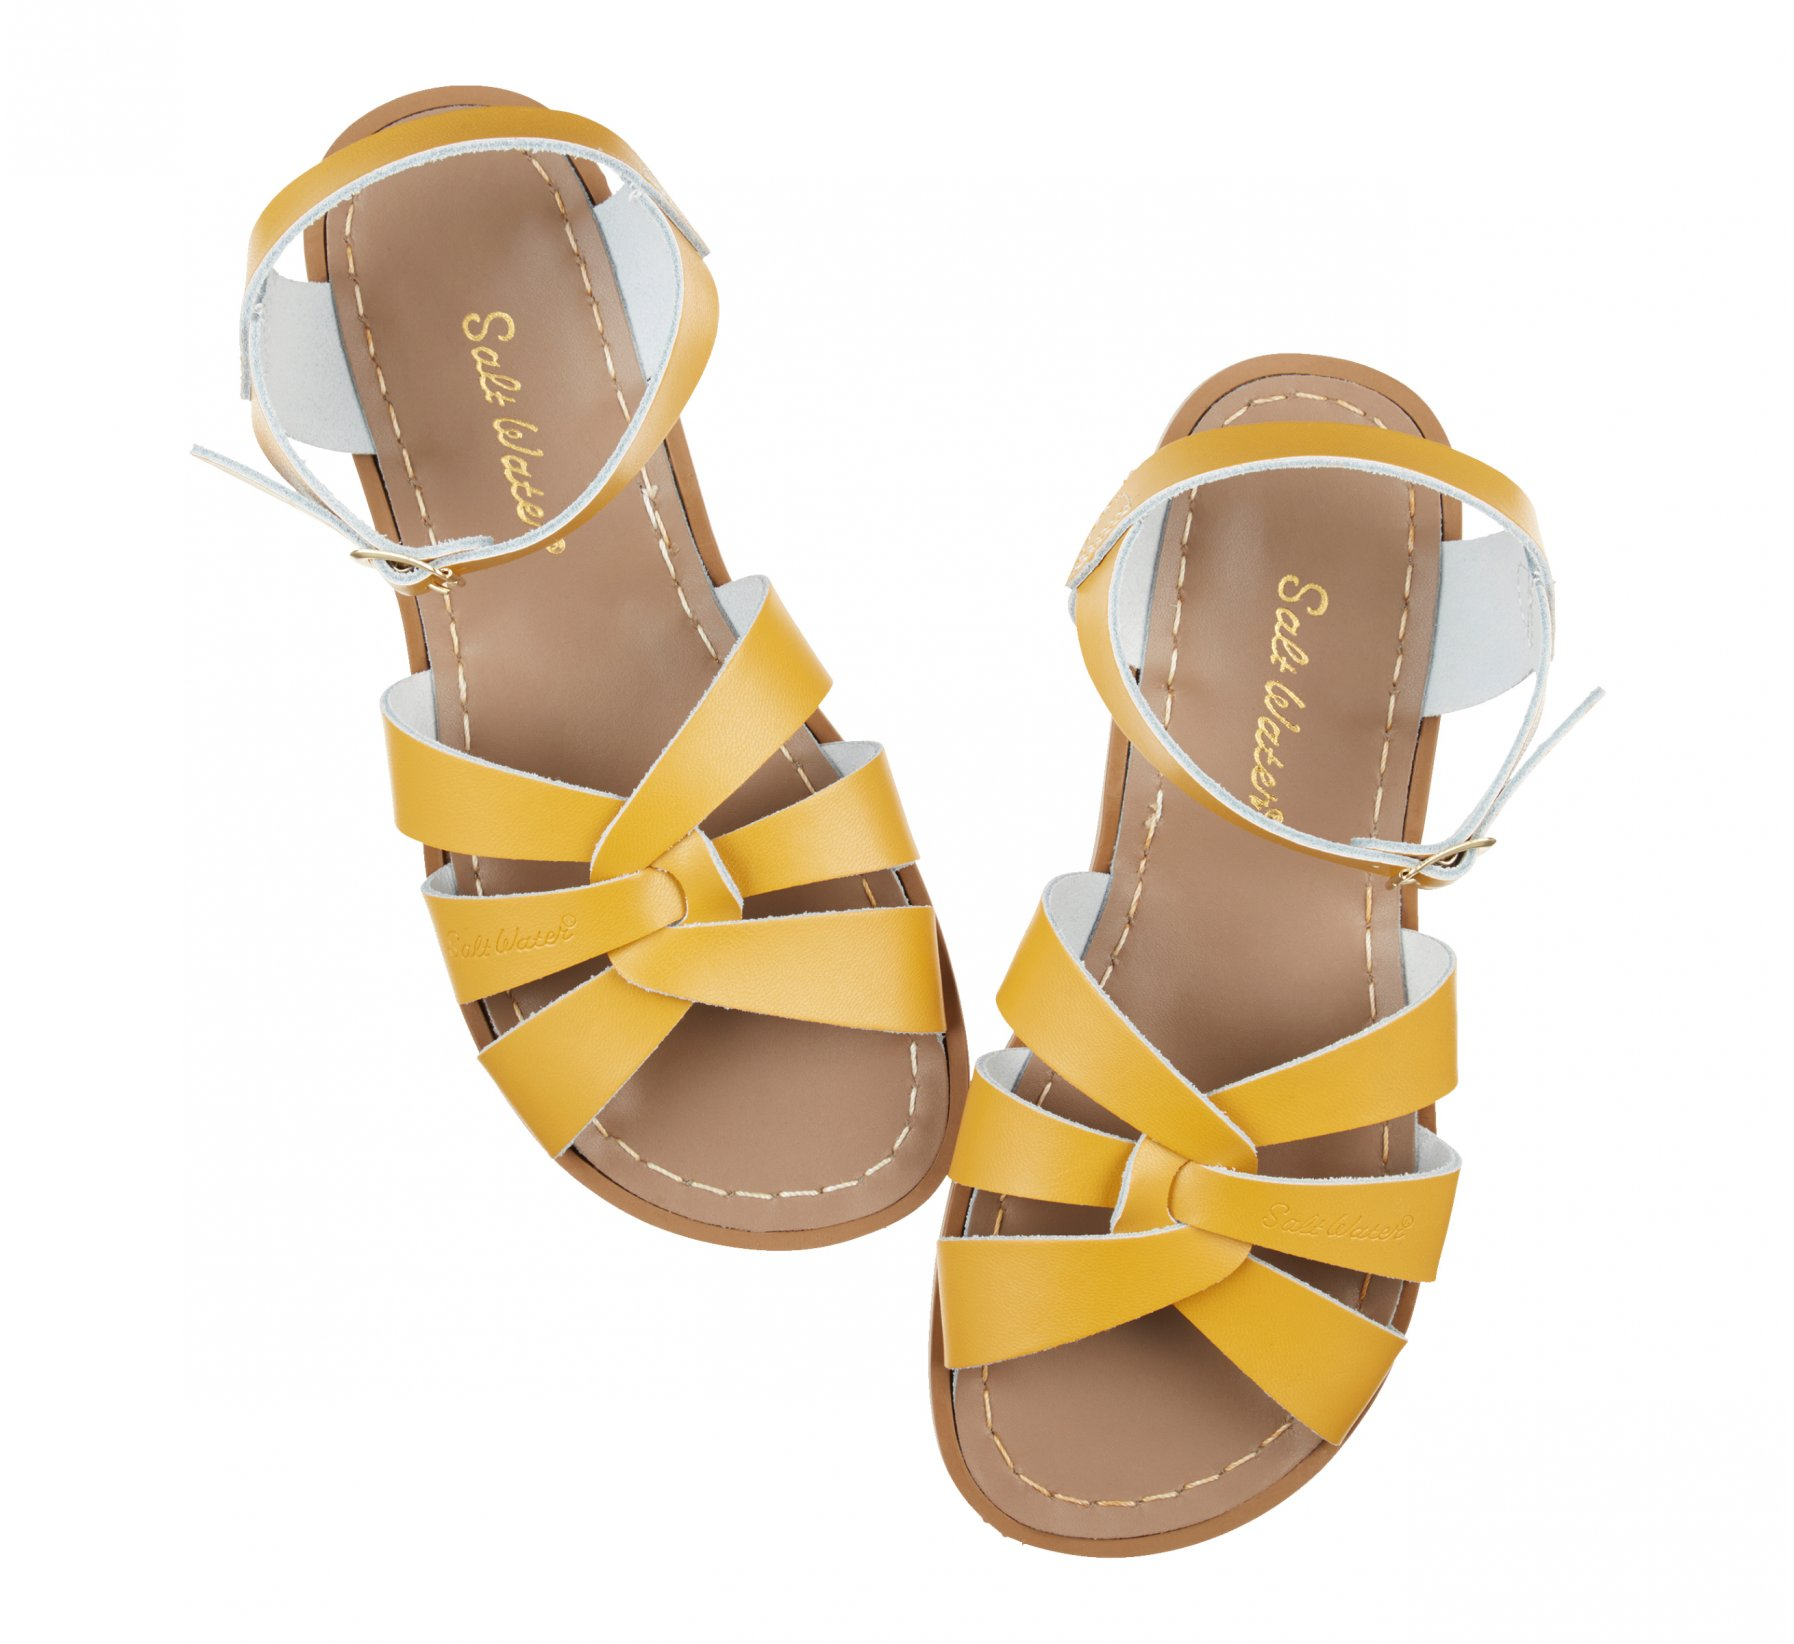 Original Mustard - Salt Water Sandals